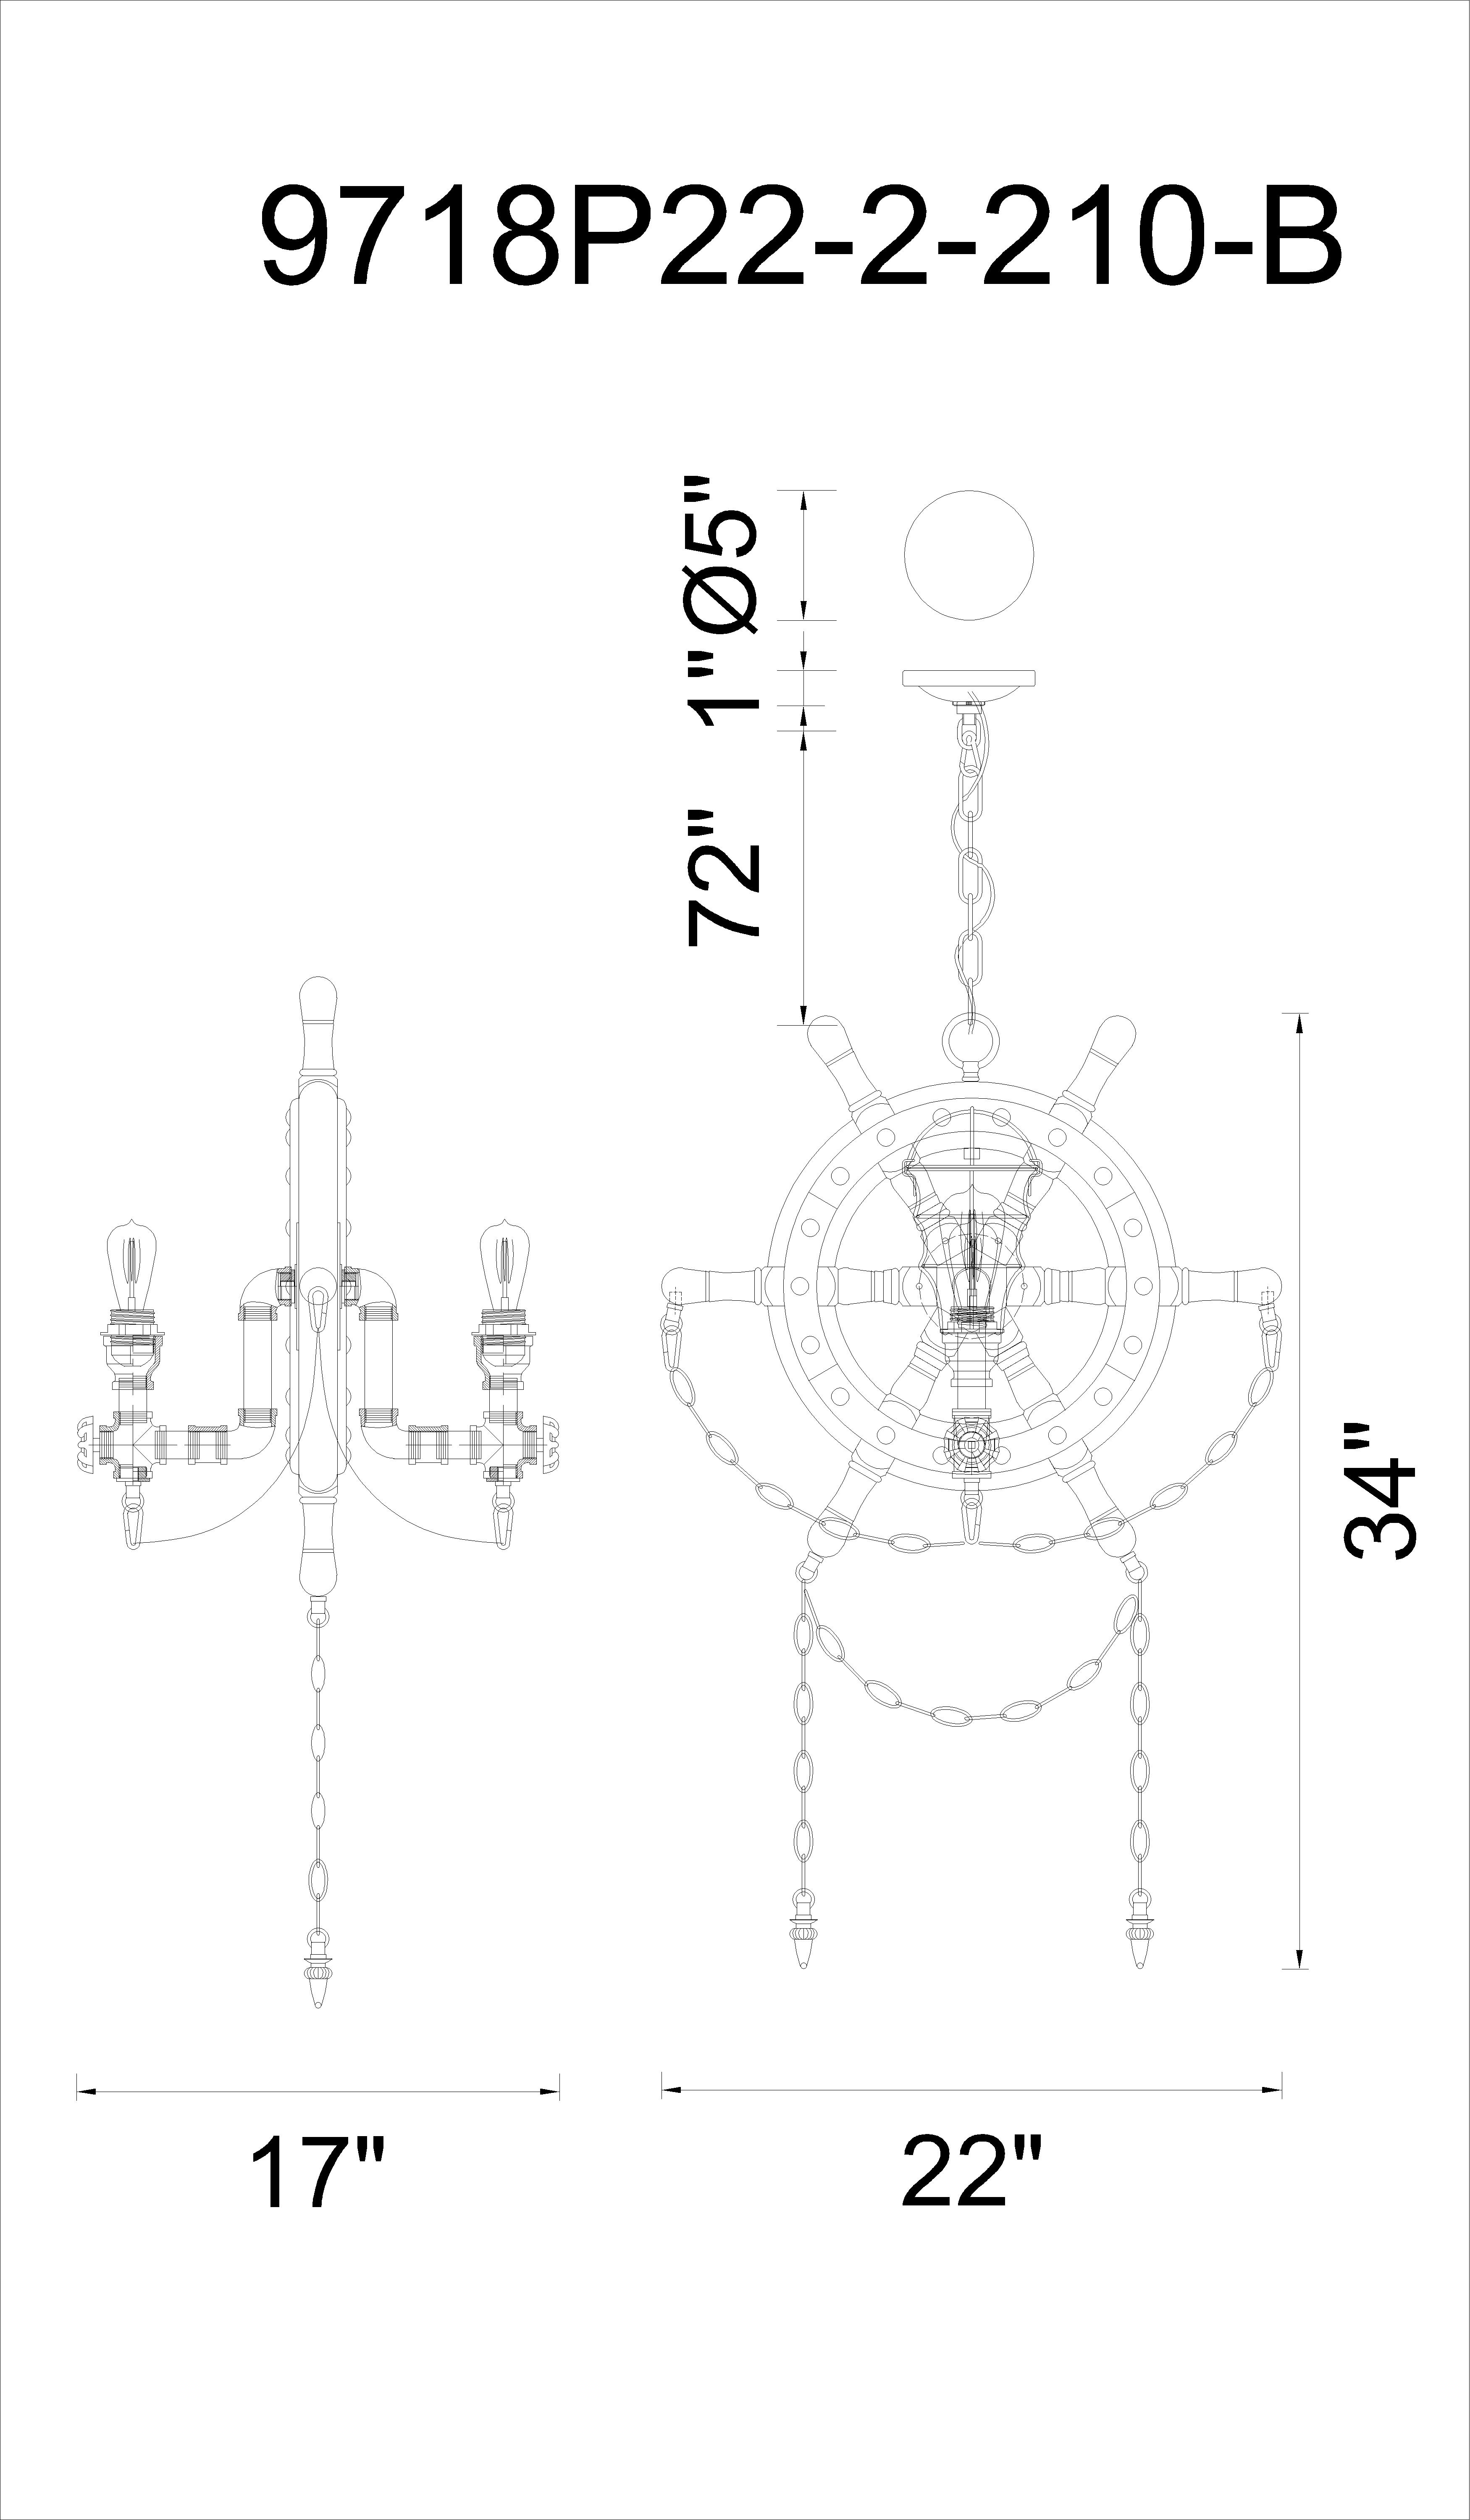 CWI Lighting Manor 2 Light Up Chandelier With Speckled Copper Model: 9718P22-2-210-B Line Drawing